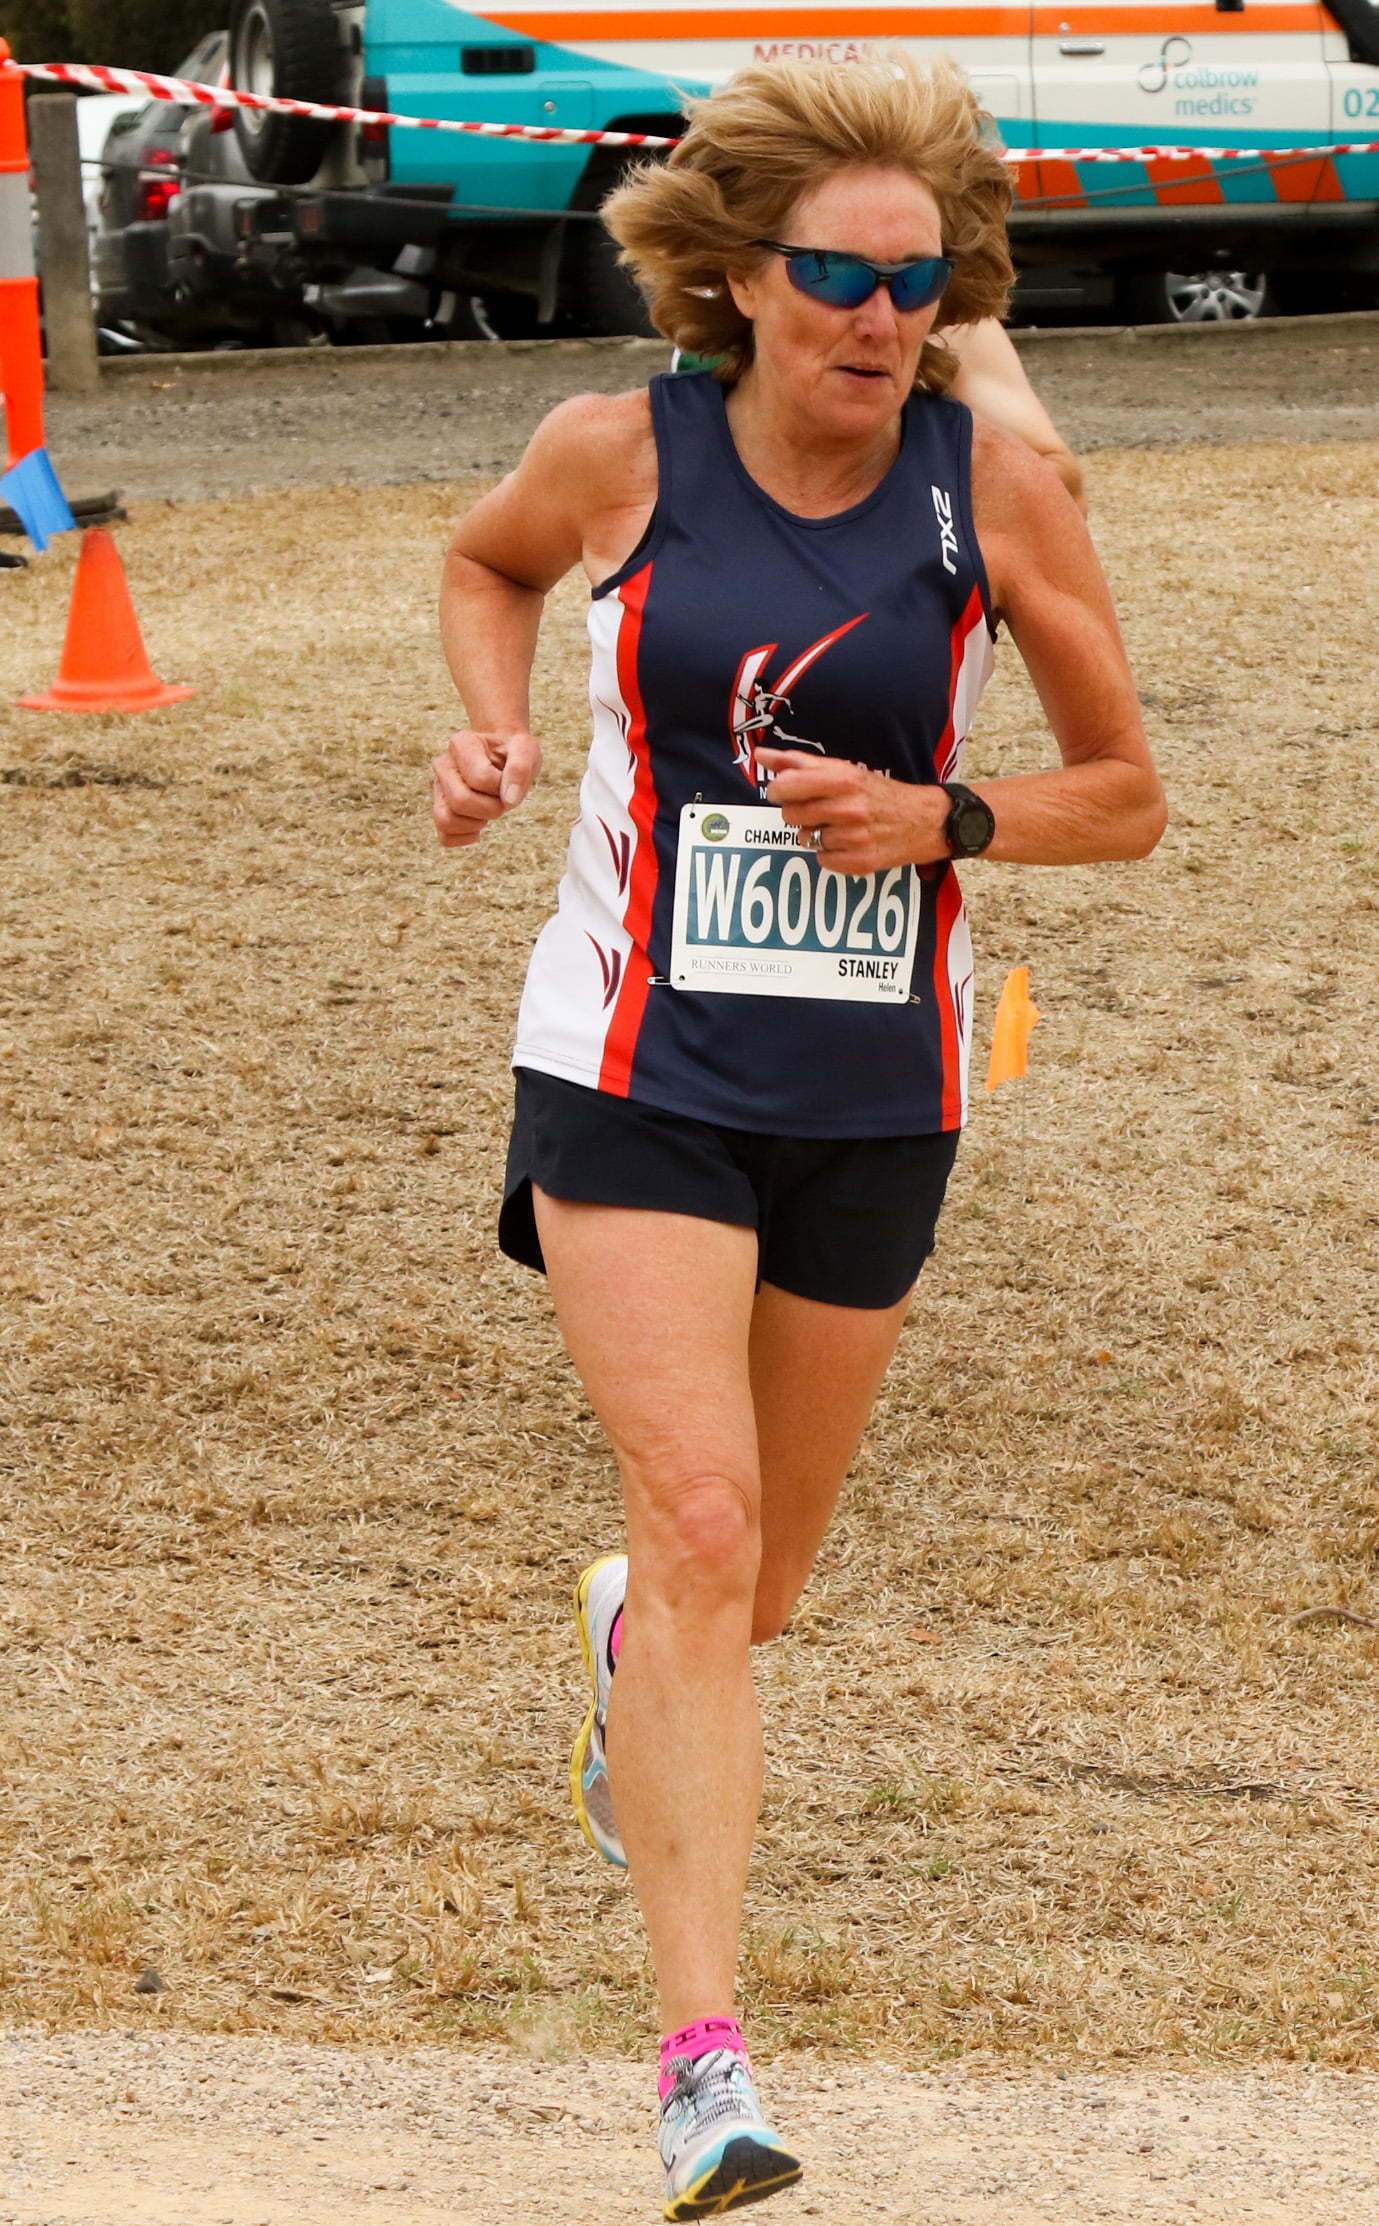 Helen Stanley 2019 Australian Masters Athletics National Championships Cross-Country Women 60-64